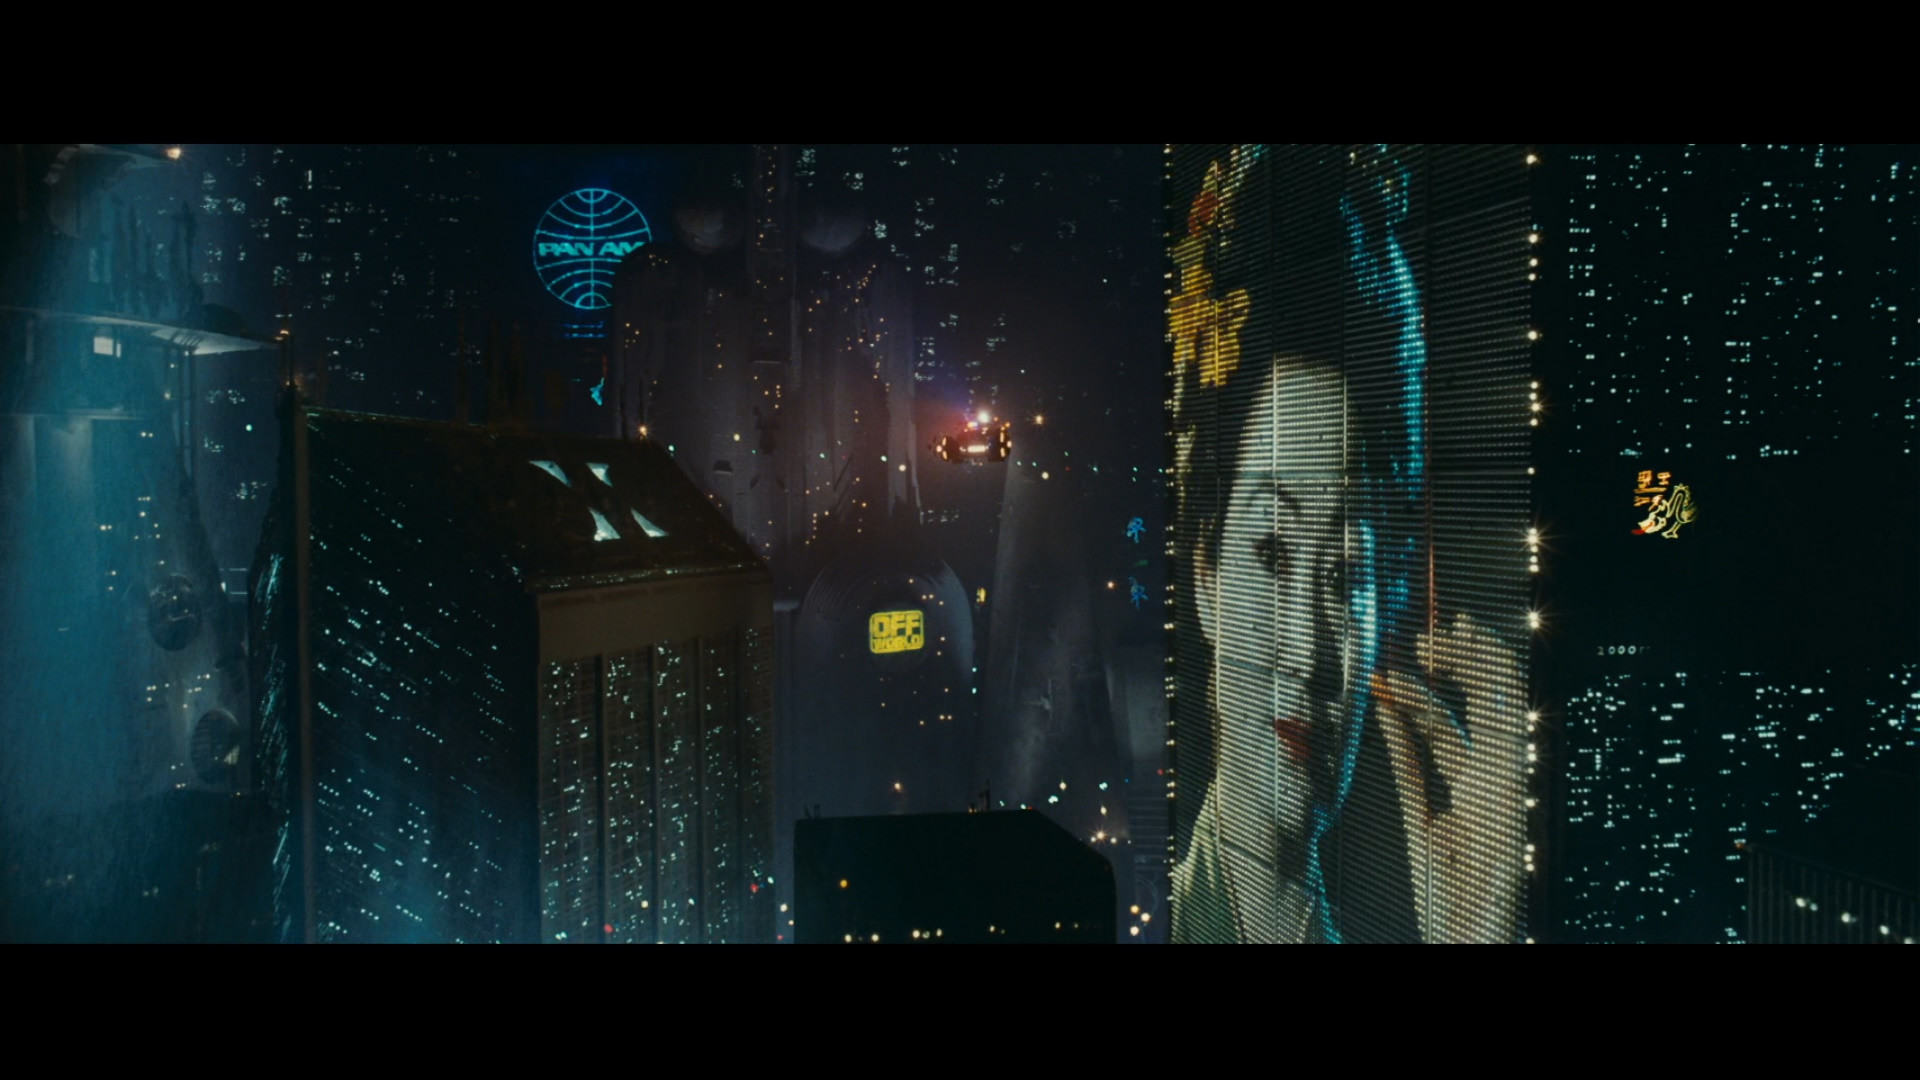 Blade Runner – Blu-ray and HD DVD – Harrison Ford